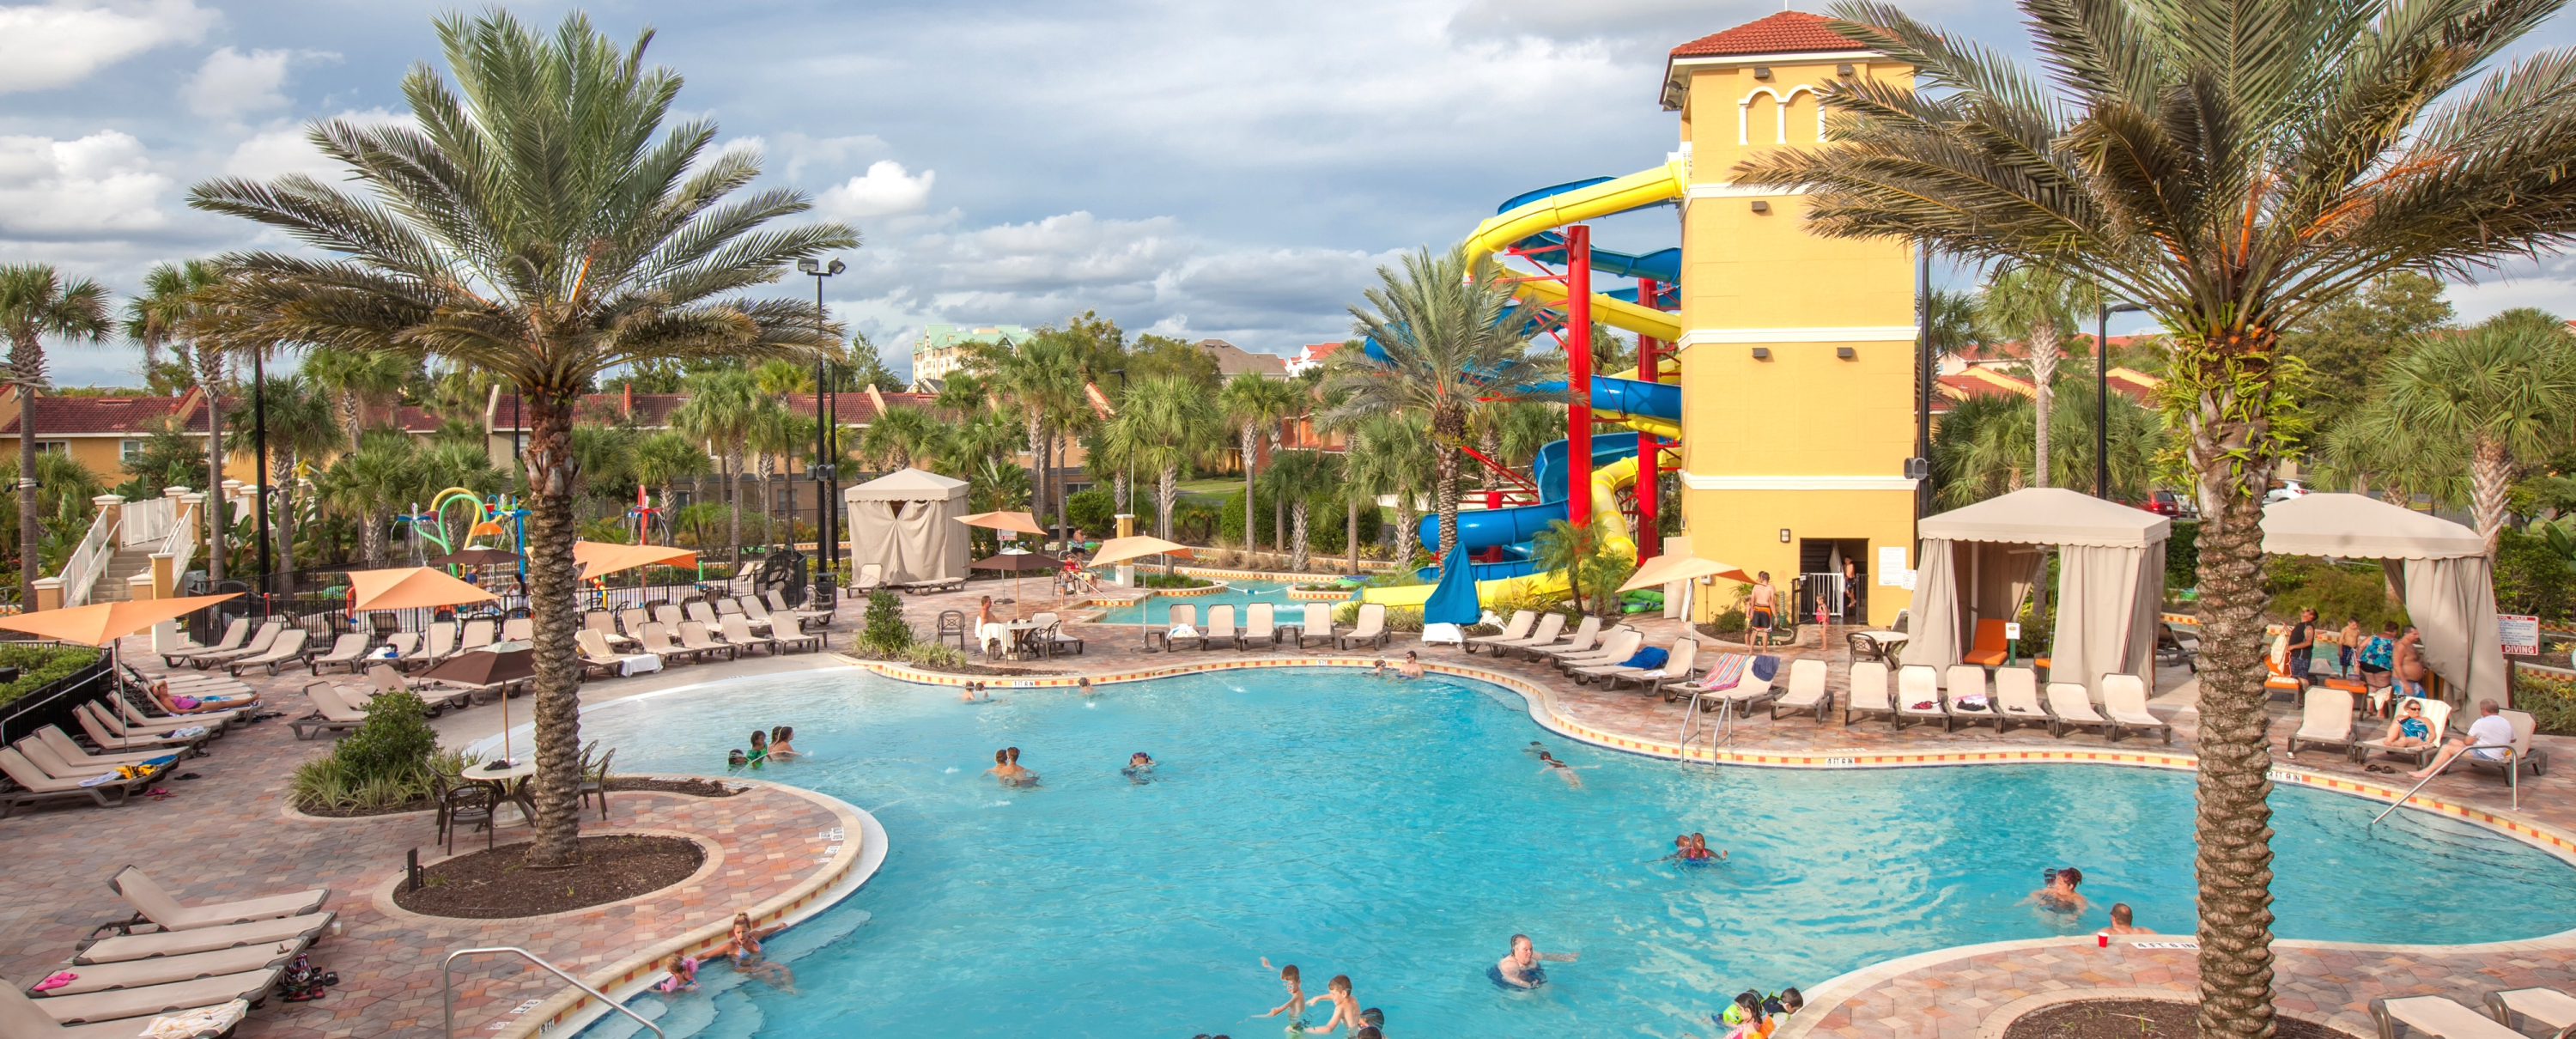 Map of Things to Do Near Fantasy World Resort  Orlando